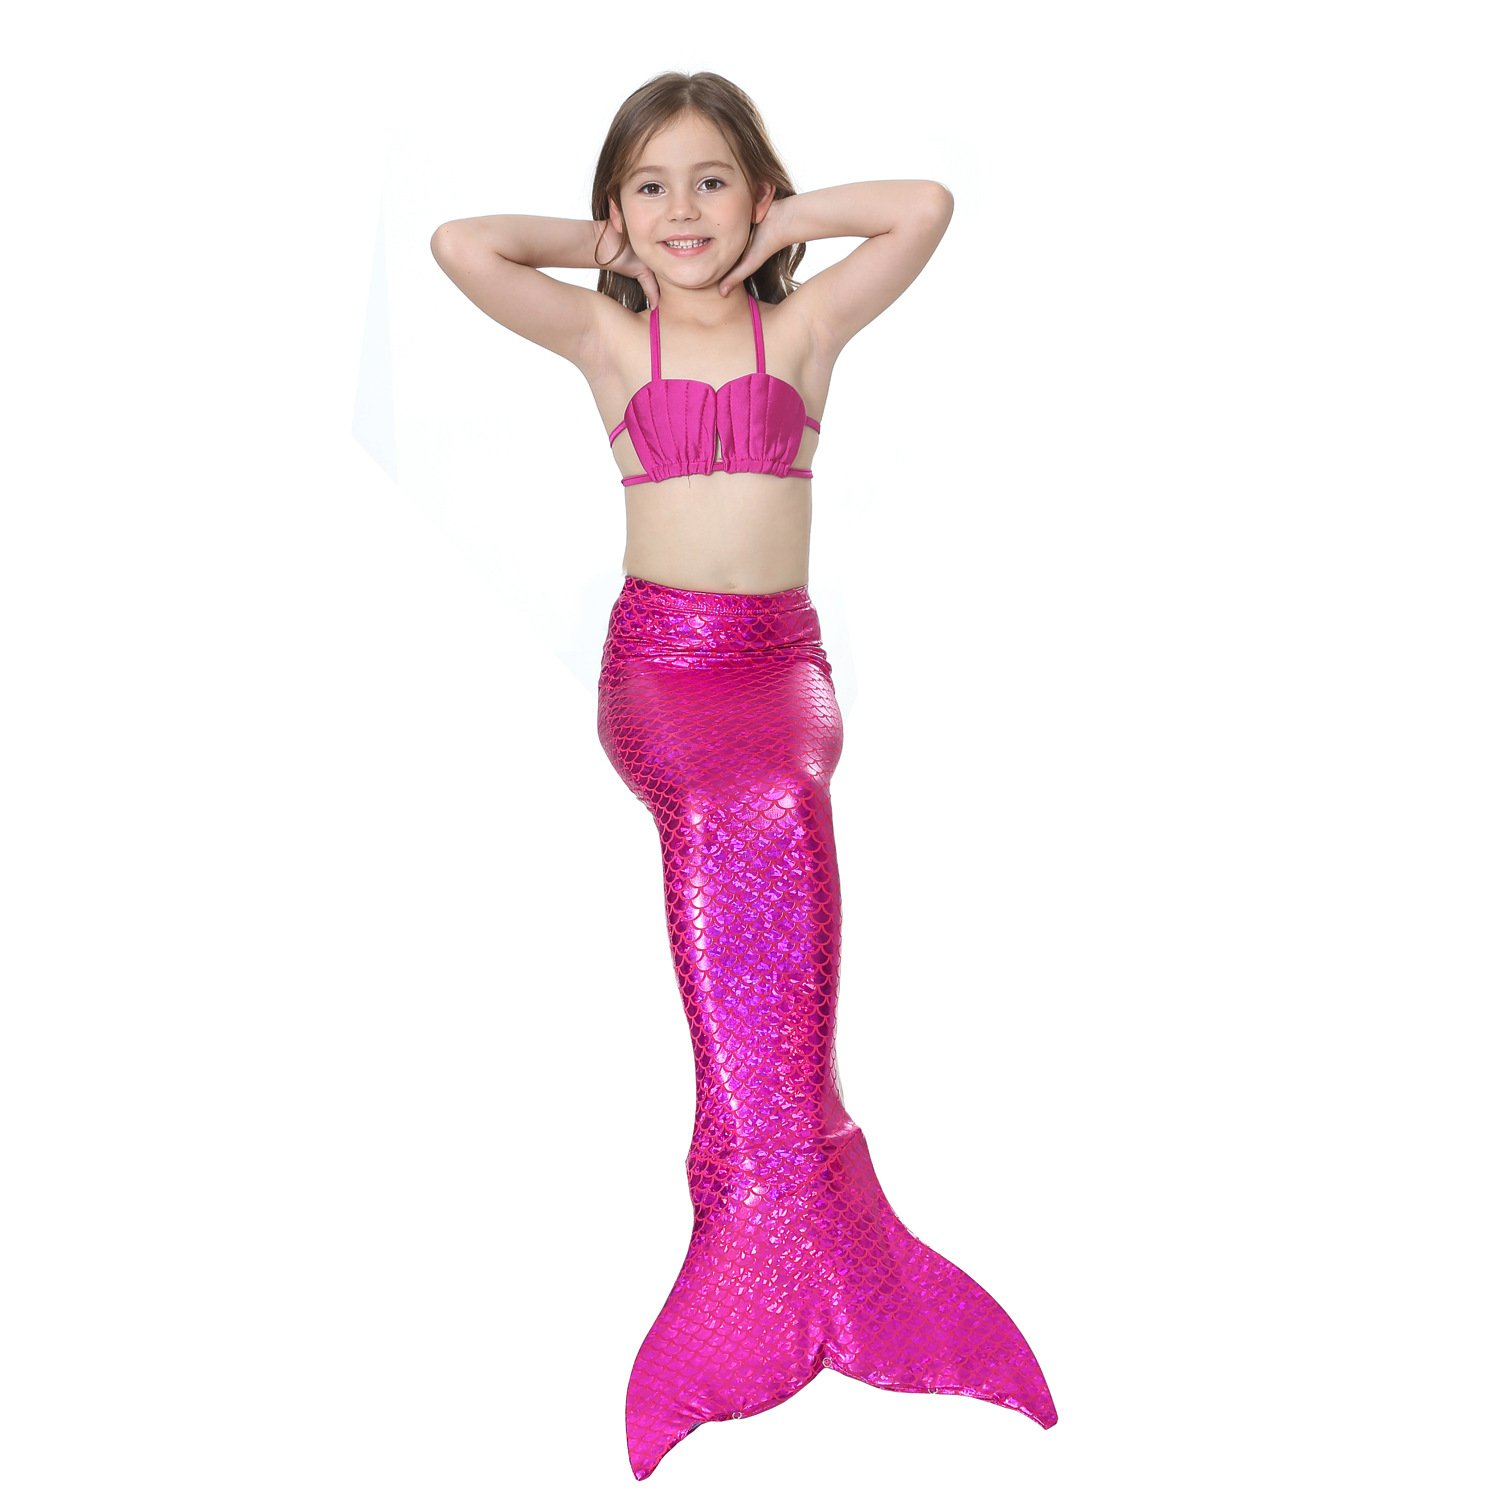 Mermaid Tails for Swimming,with Monofin,Children Mermaid Clothing Cosplay,Swimmable Tail Swimsuit 4PCS Sets